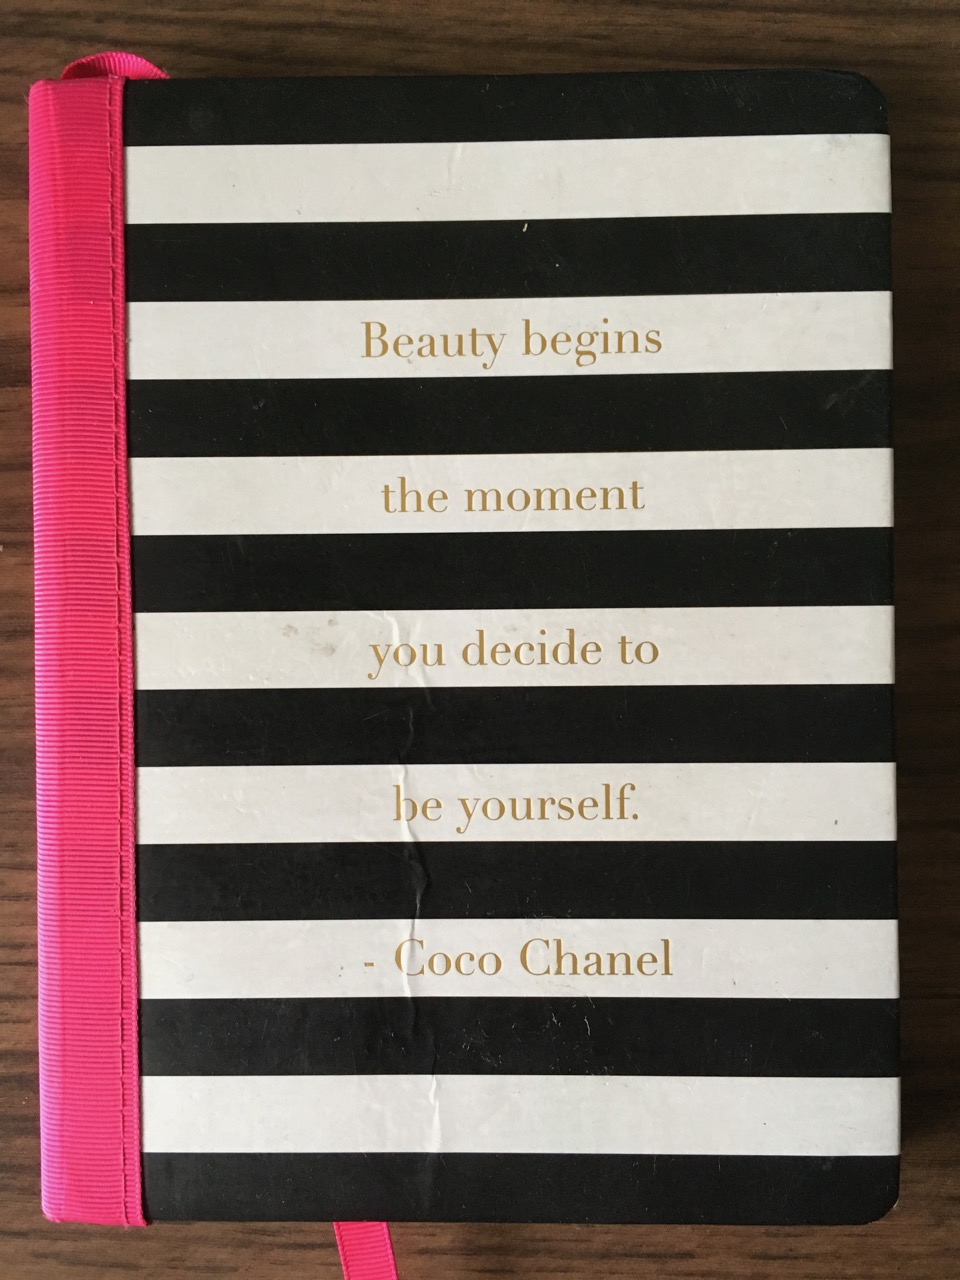 Beauty begins the moment you decide to be yourself. —Coco Chanel